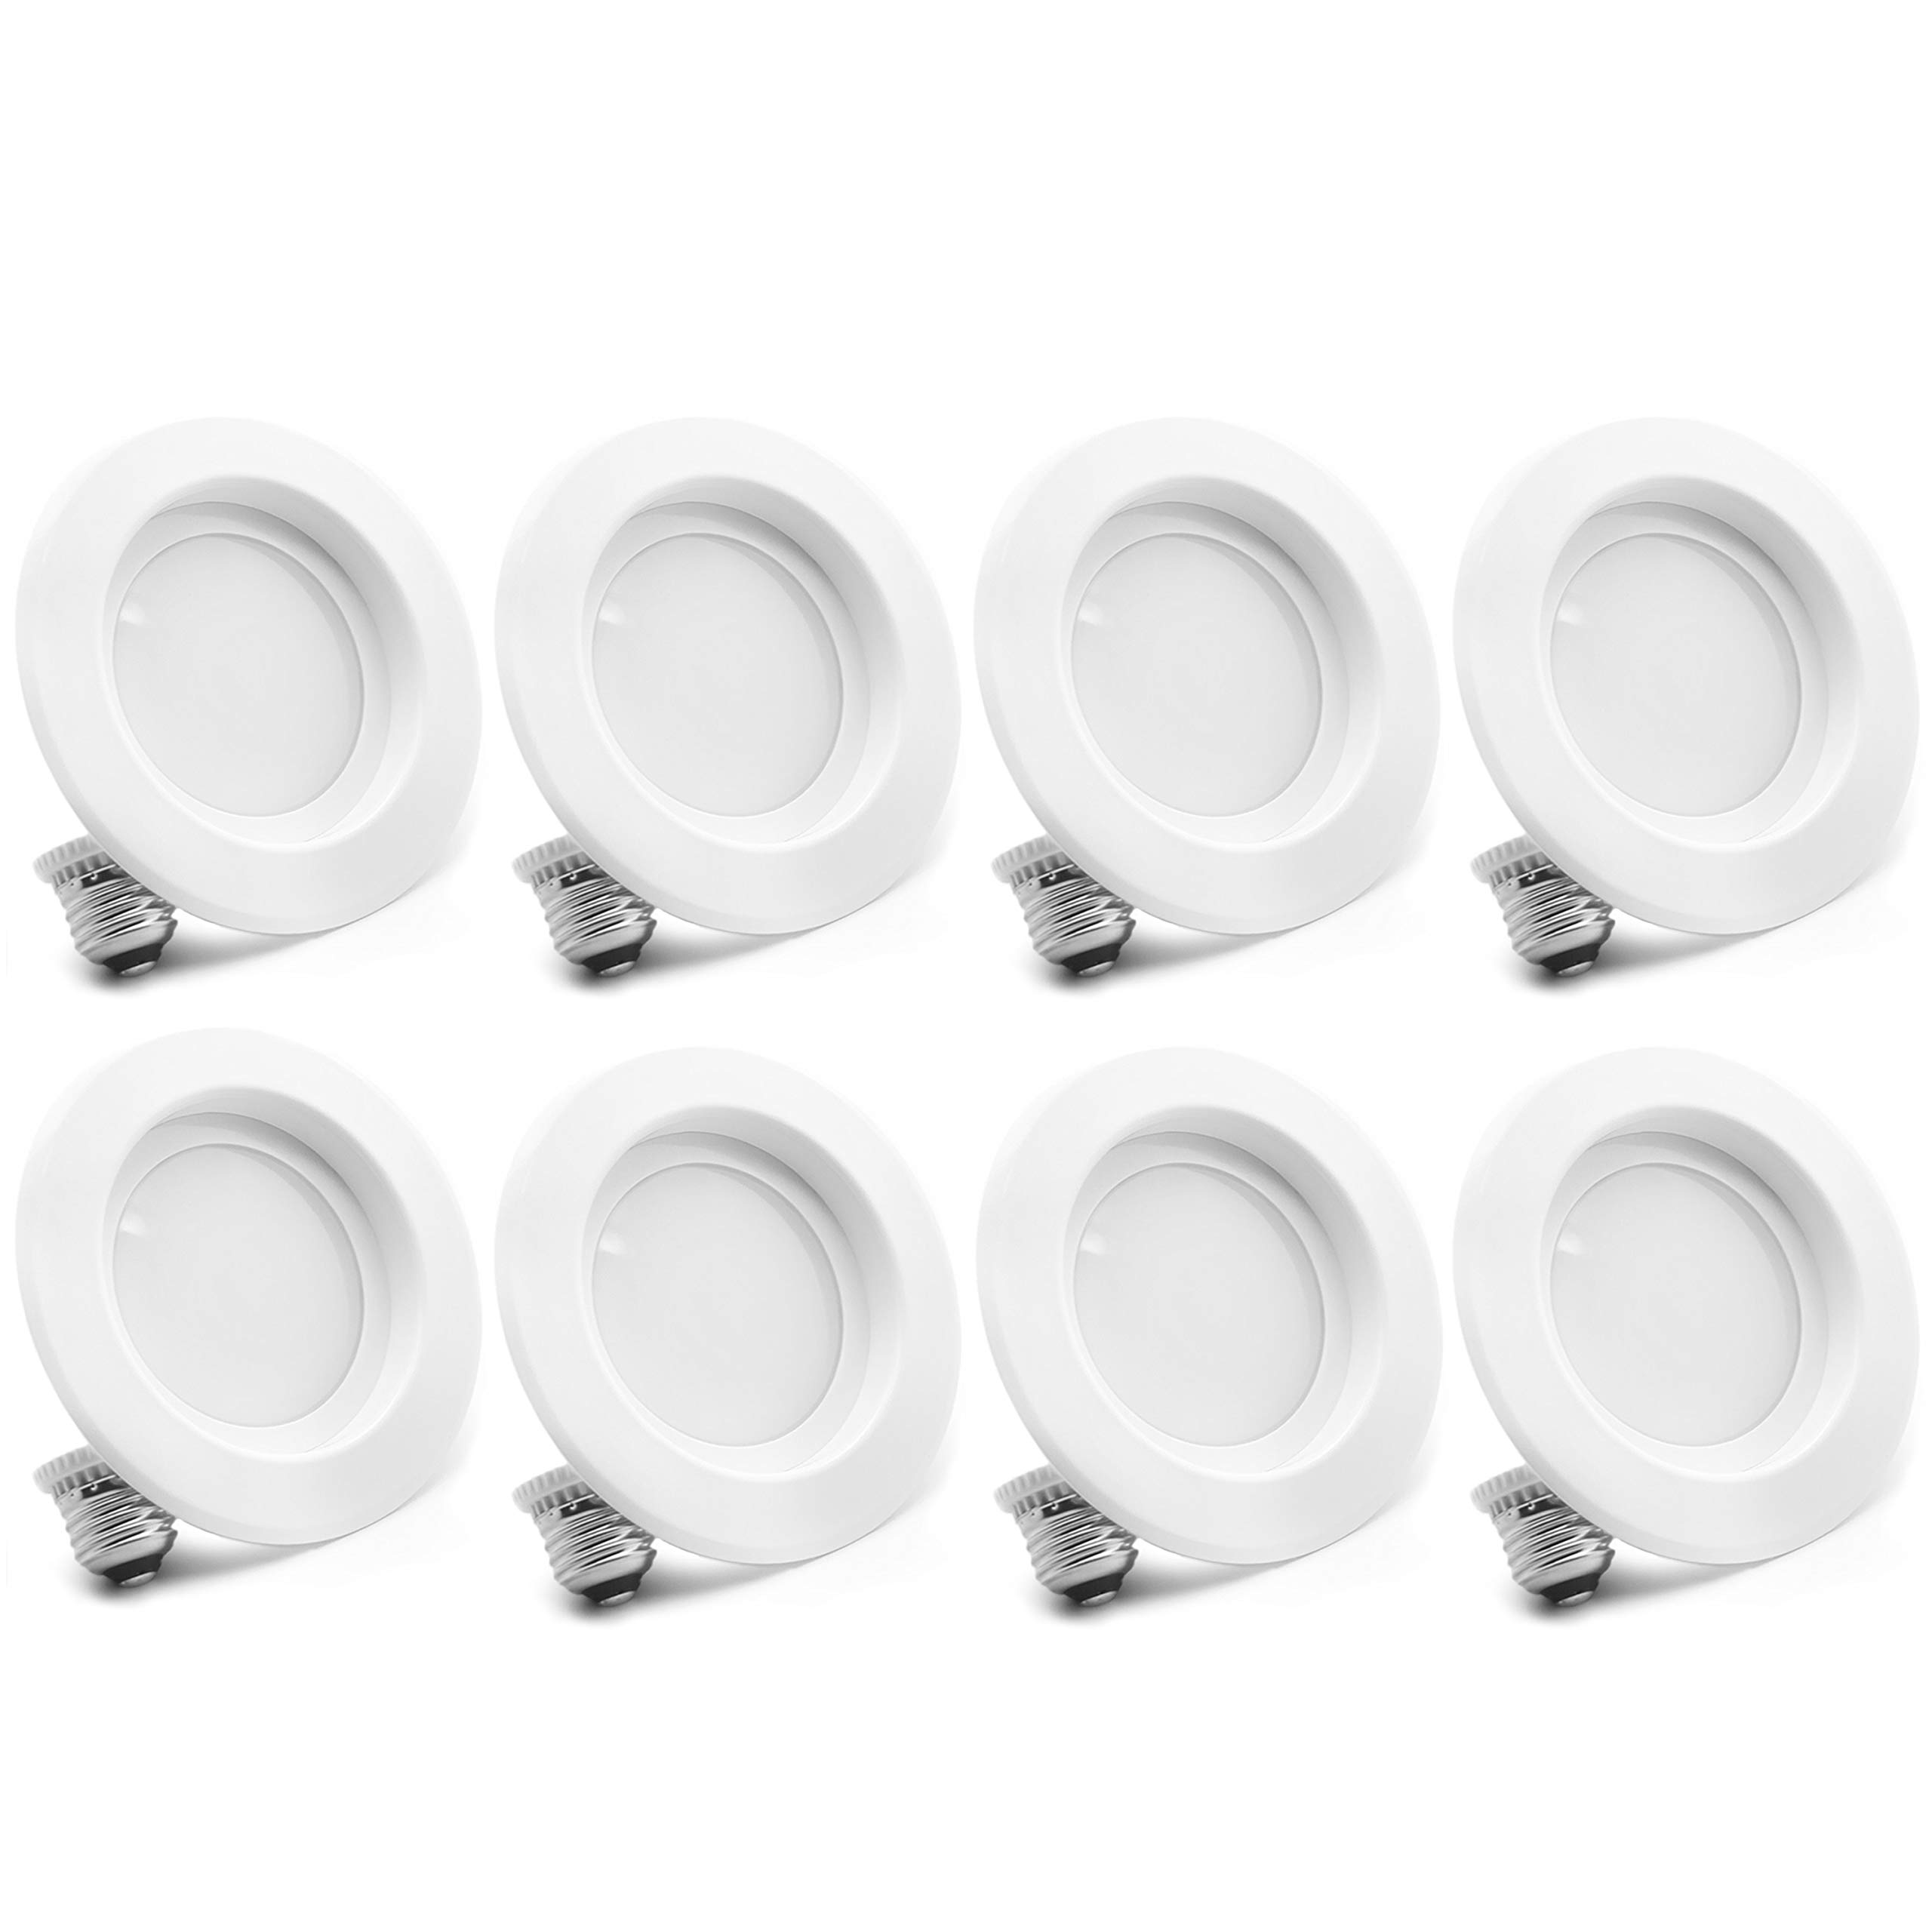 "Bioluz LED 4"" LED Retrofit Recessed Light 65W Equivalent (Using 10W) 700 Lumen, 90 CRI, Dimmable, UL-Listed CEC JA8 Title 24 Compliant (8-Pack, 3000K Soft White)"